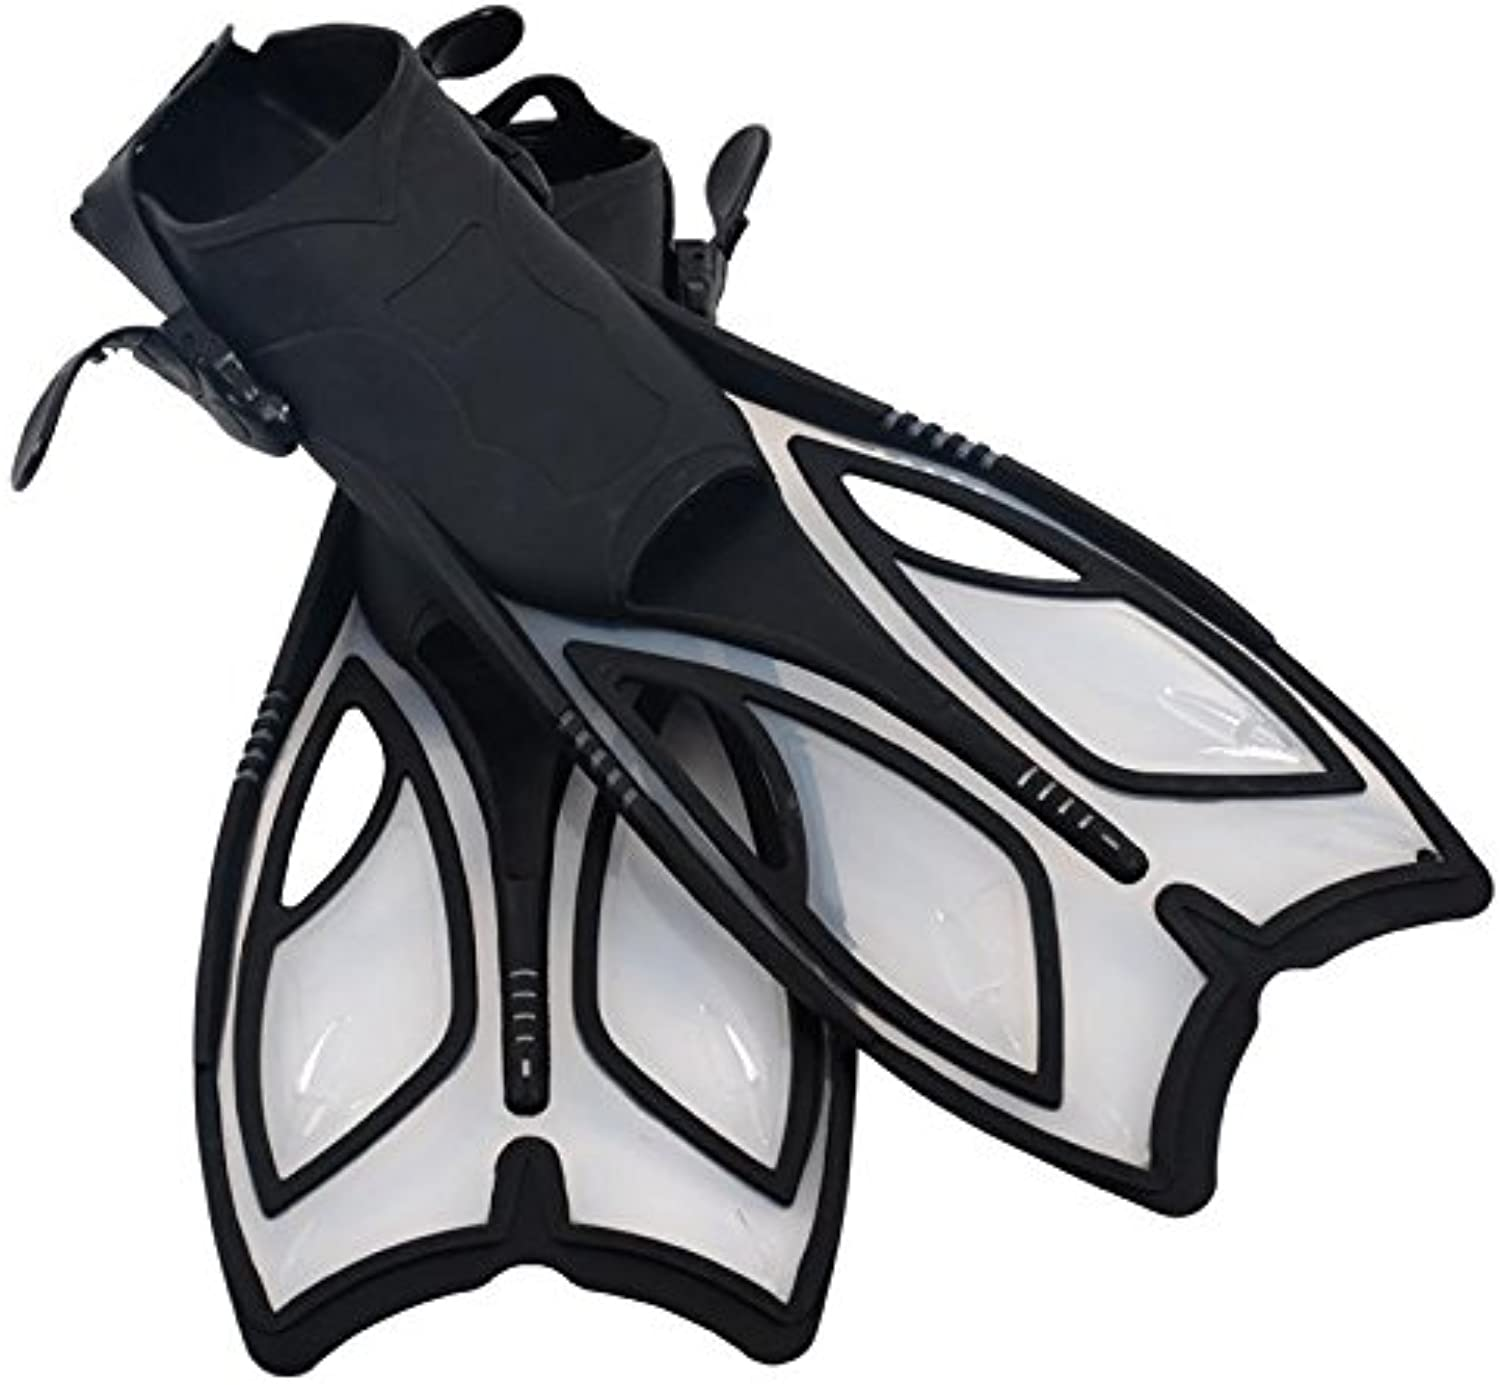 HOTIAN Adjustable Speed Diving Fins for Swimming Snorkeling Watersports